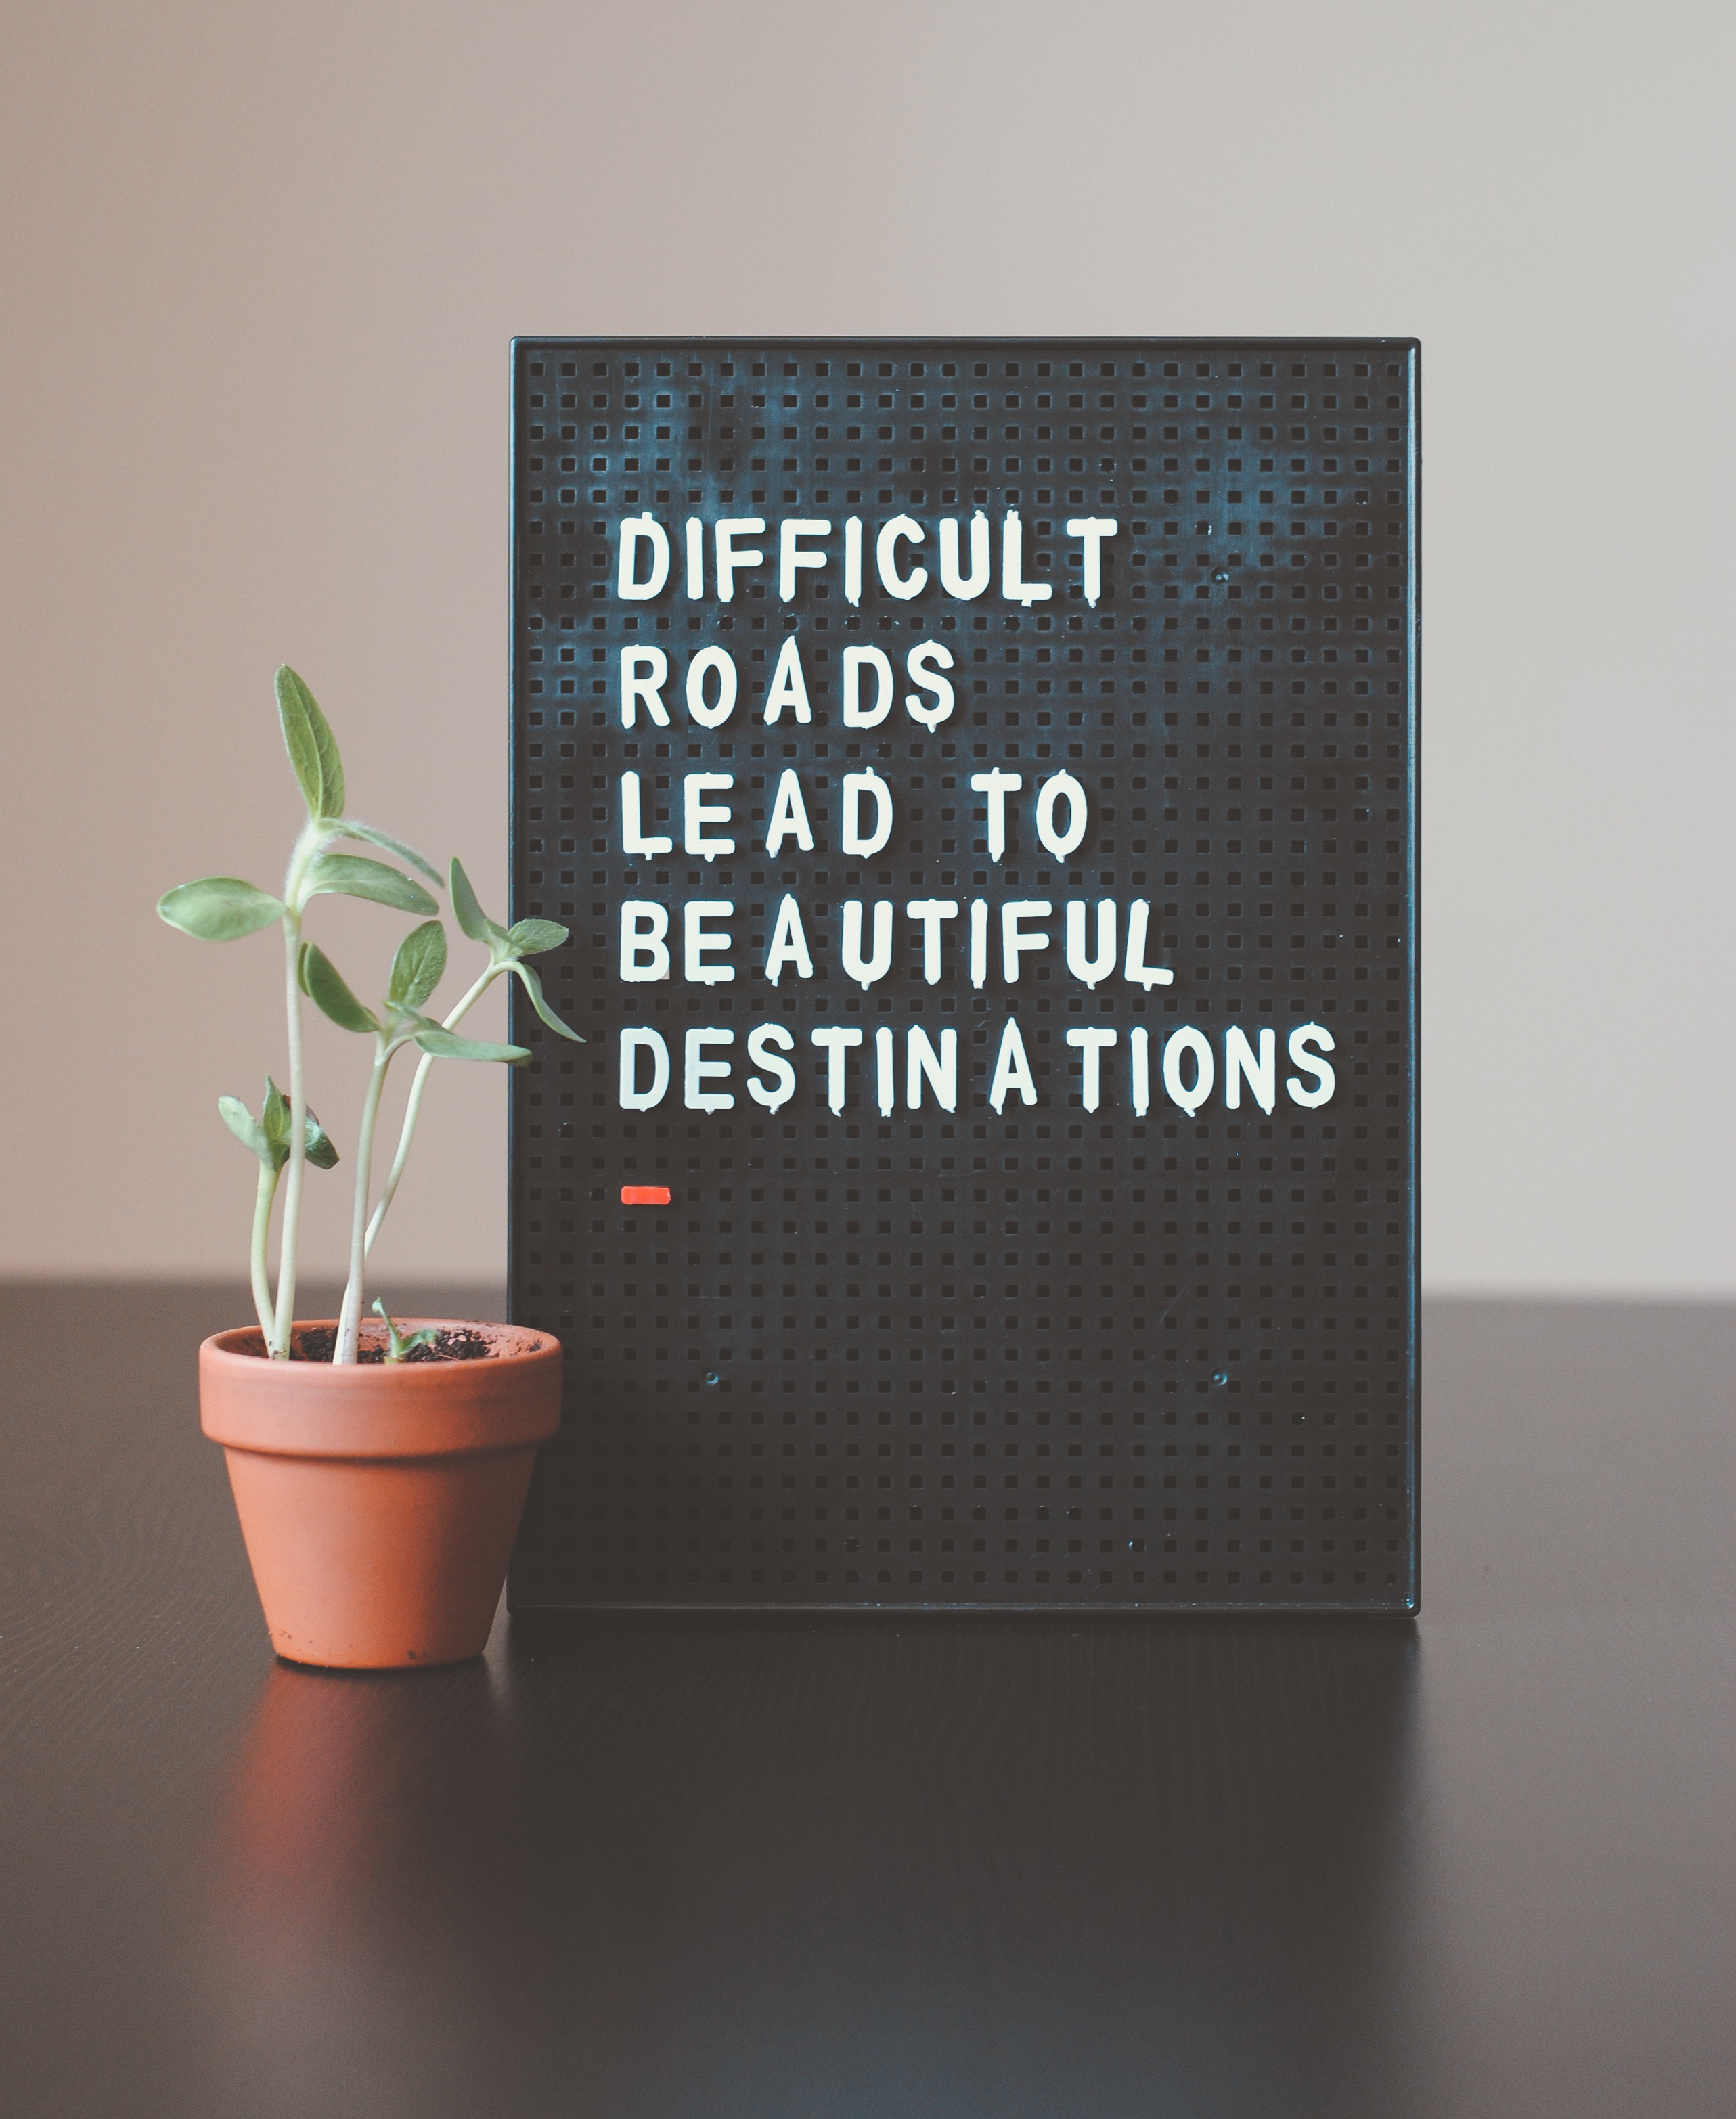 Writing difficult roads will lead to beautiful destinations in your work